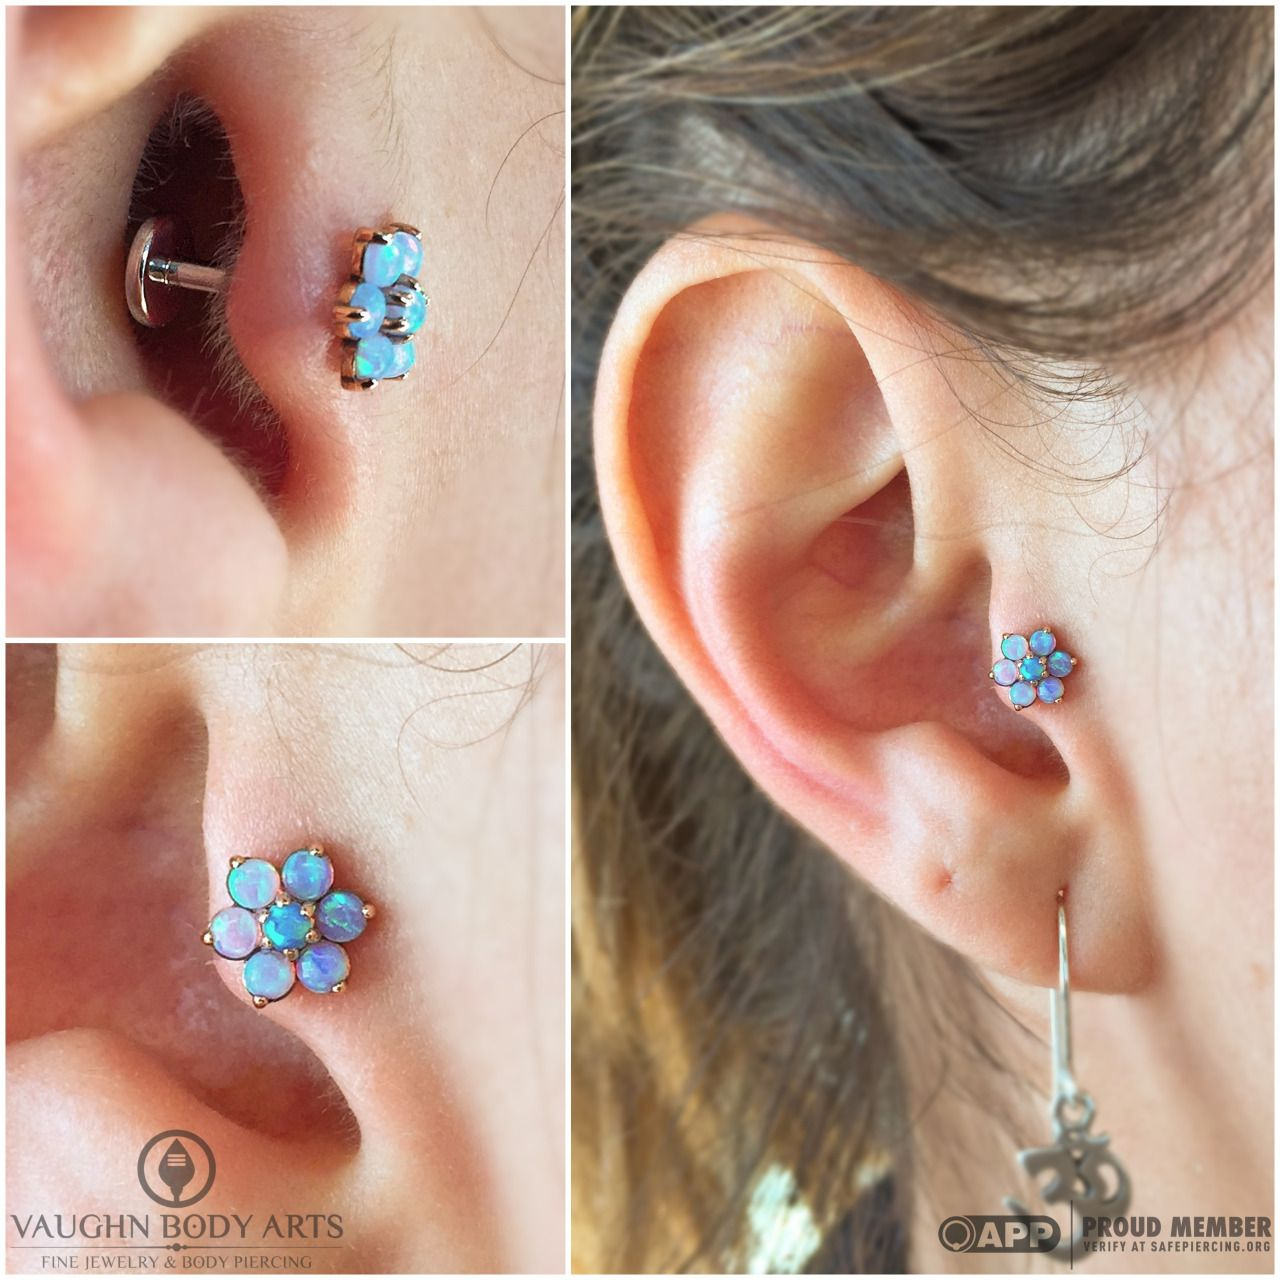 Maria Stopped By Today For A Tragus Piercing It Only Took Her A Second To